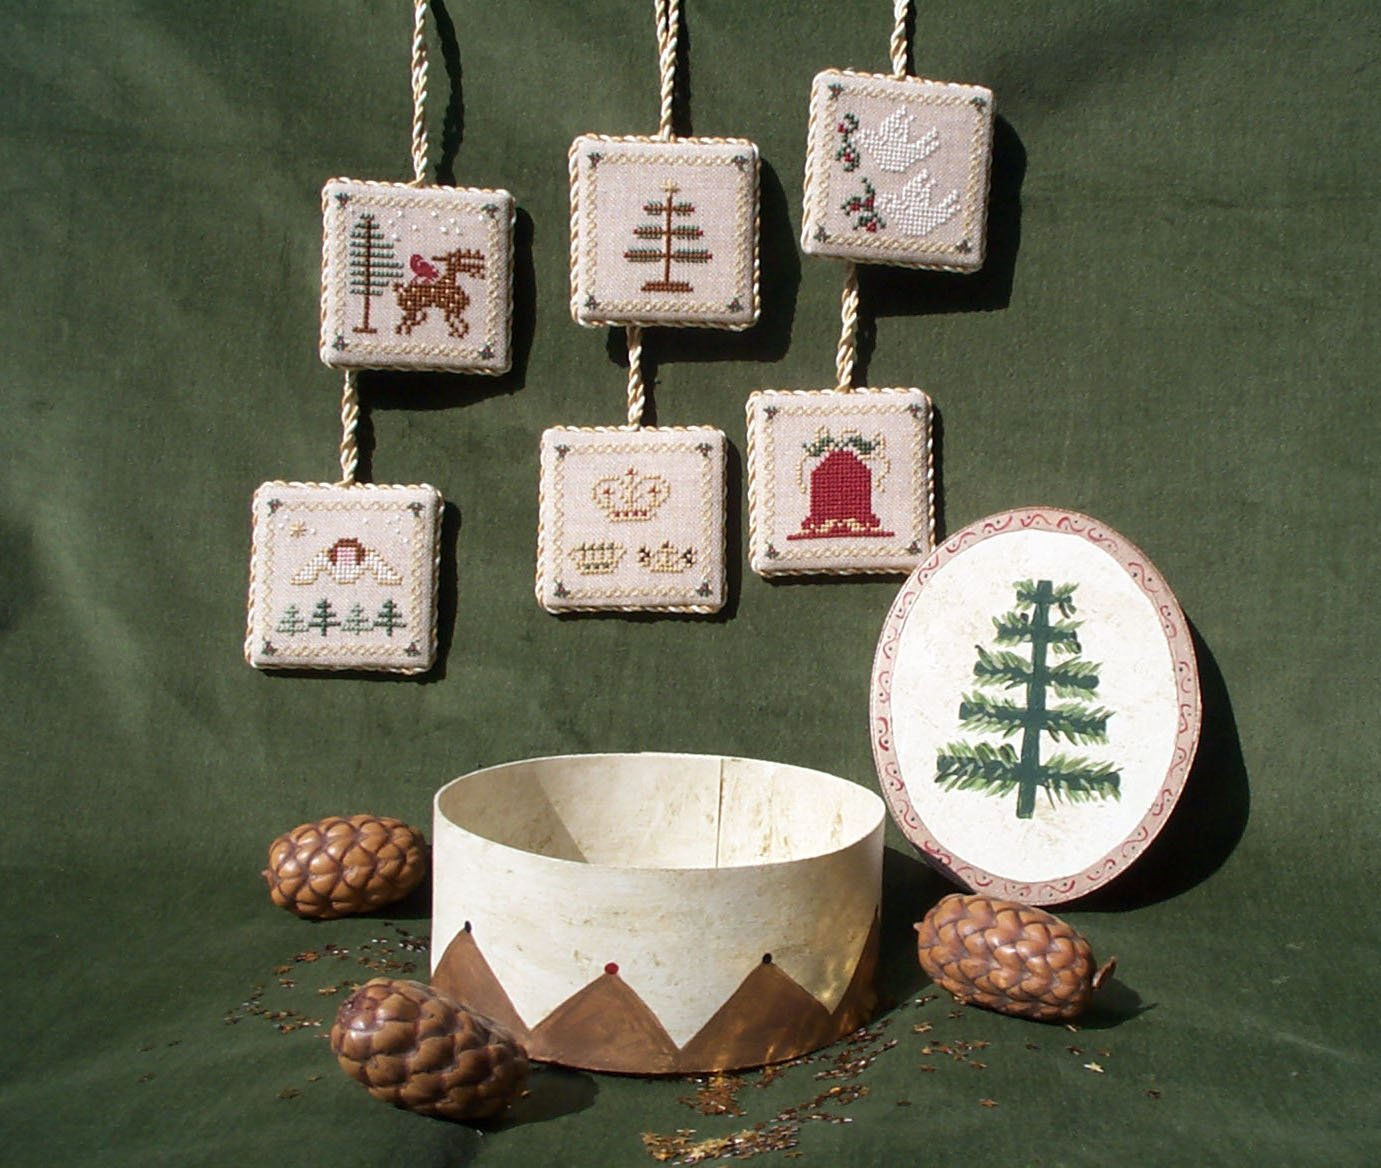 Dames of the Needle Christmas Treasures Ornaments